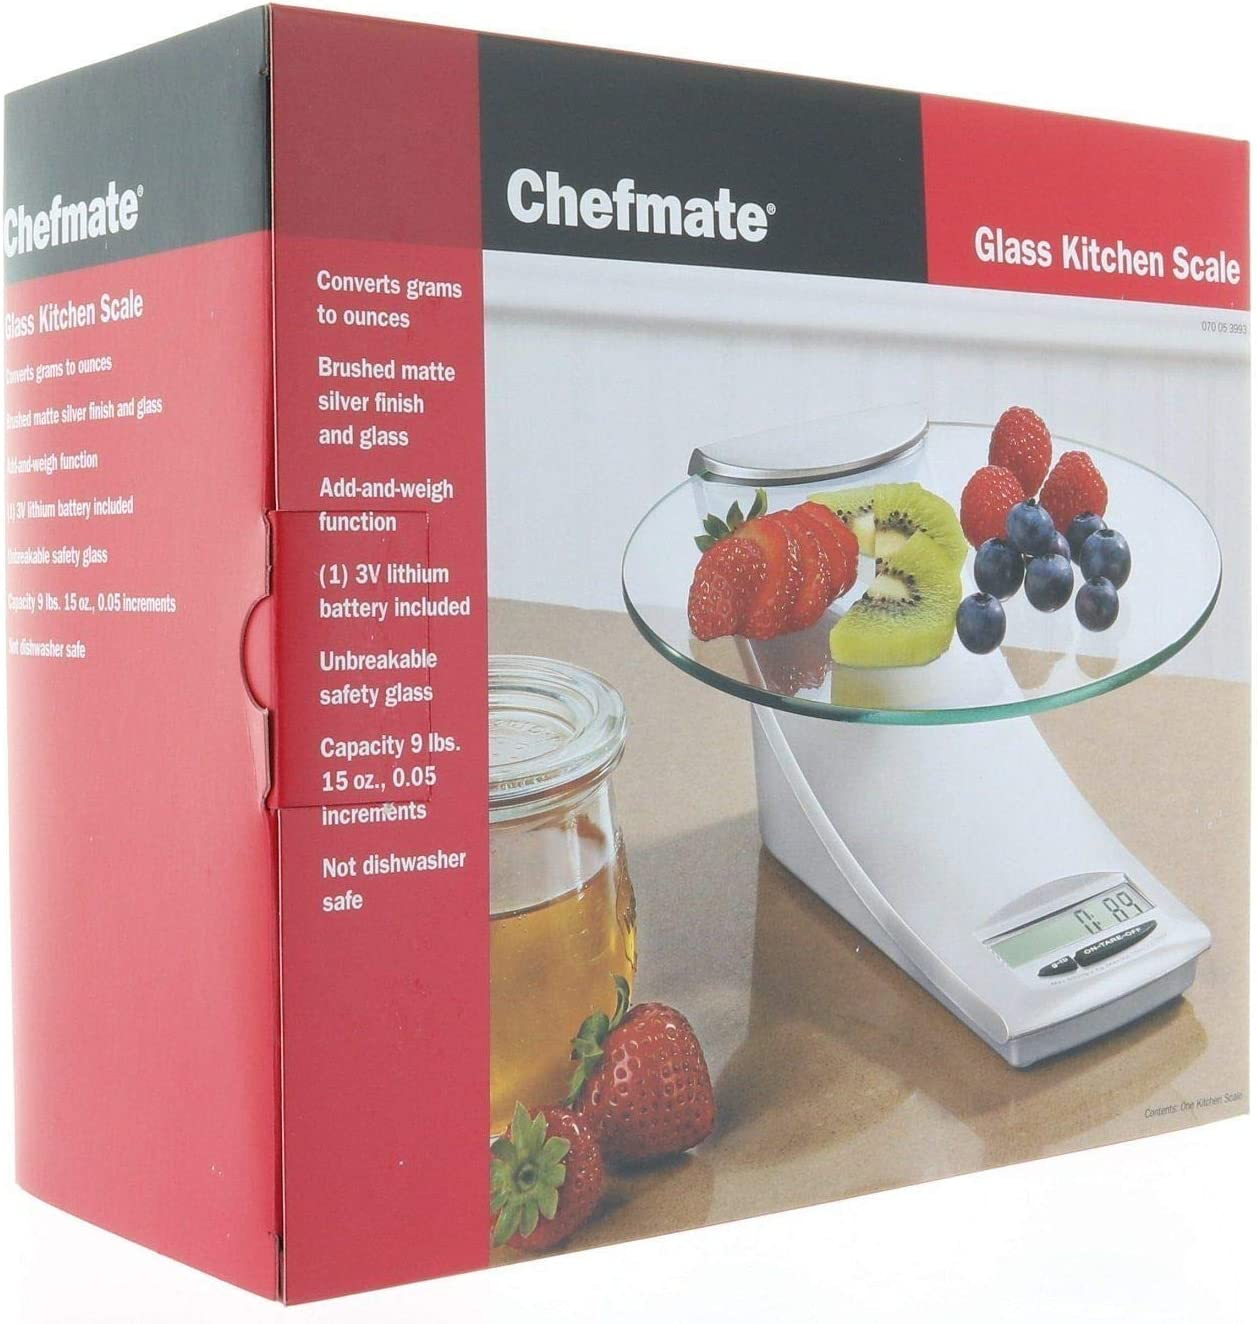 Chefmate Glass Kitchen Food Digital Scale 9lb/4kg, Fast & Precise Converts Grams to ounces